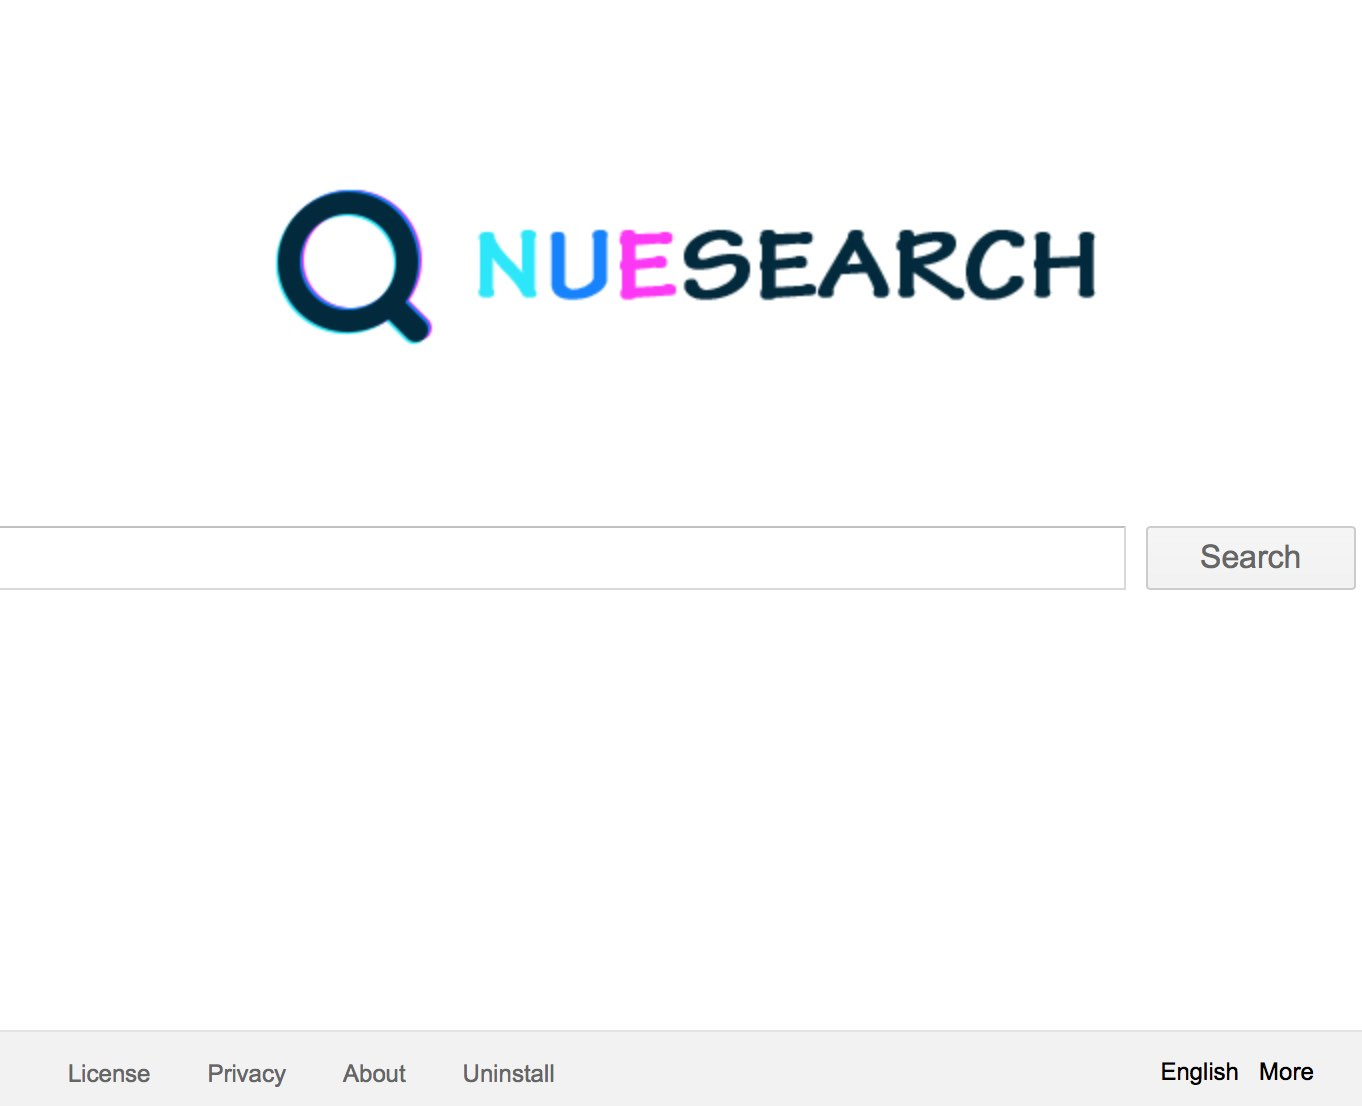 Nuesearch.com